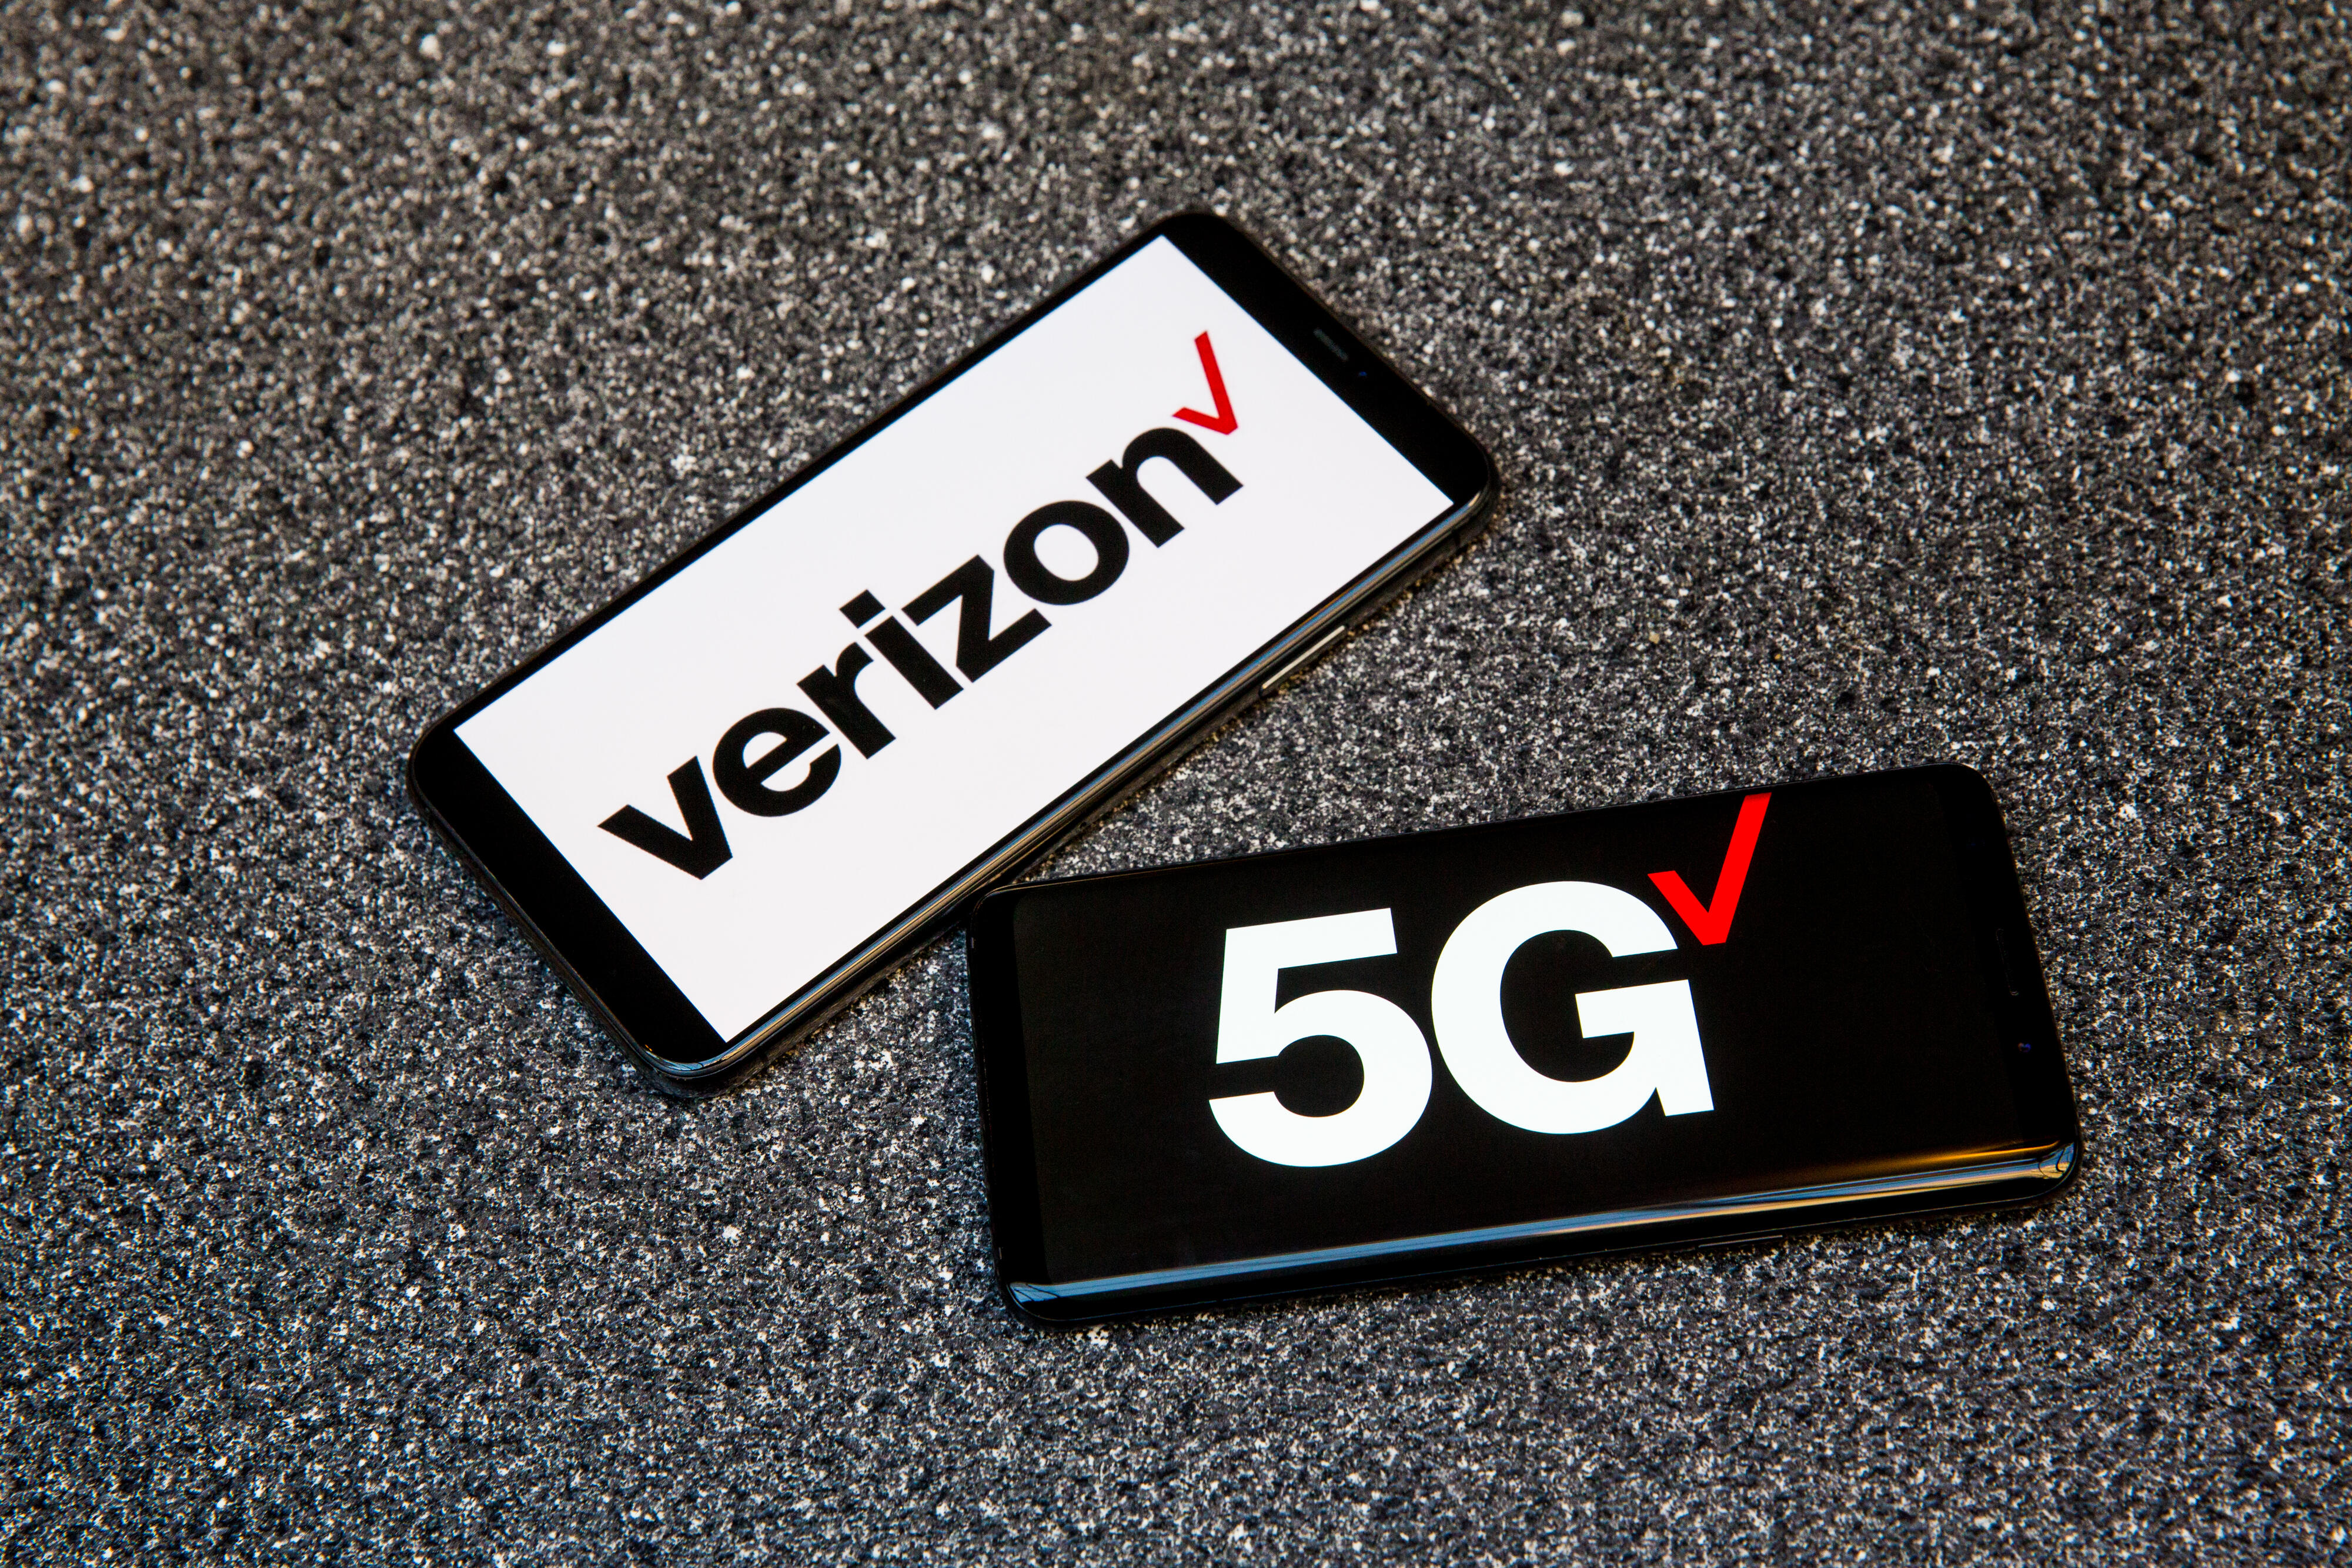 Verizon ends 2020 with growth in wireless, Fios internet users